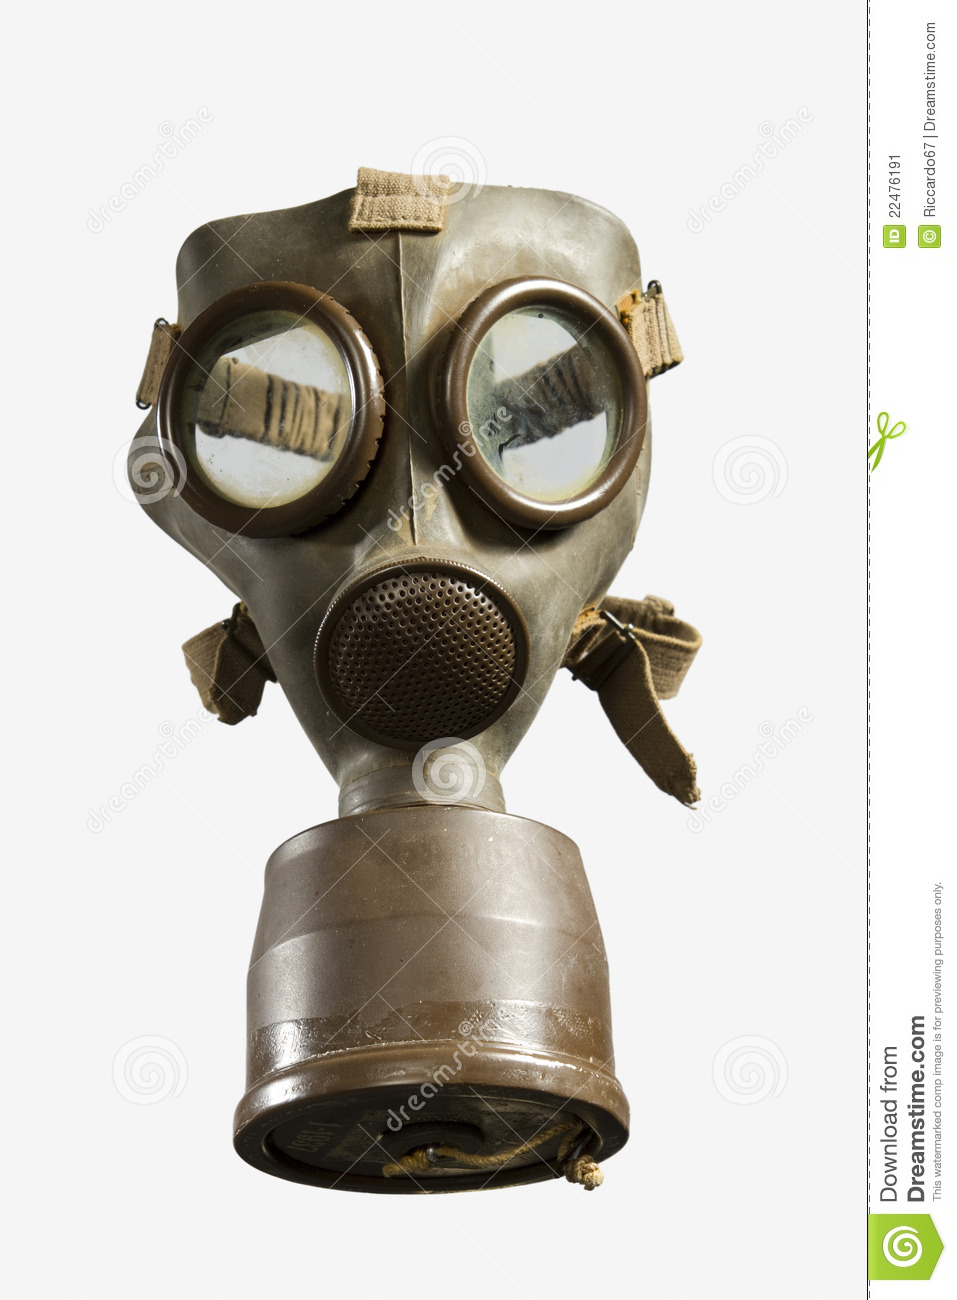 Vintage Gas Mask Isolated On White Background Stock Image